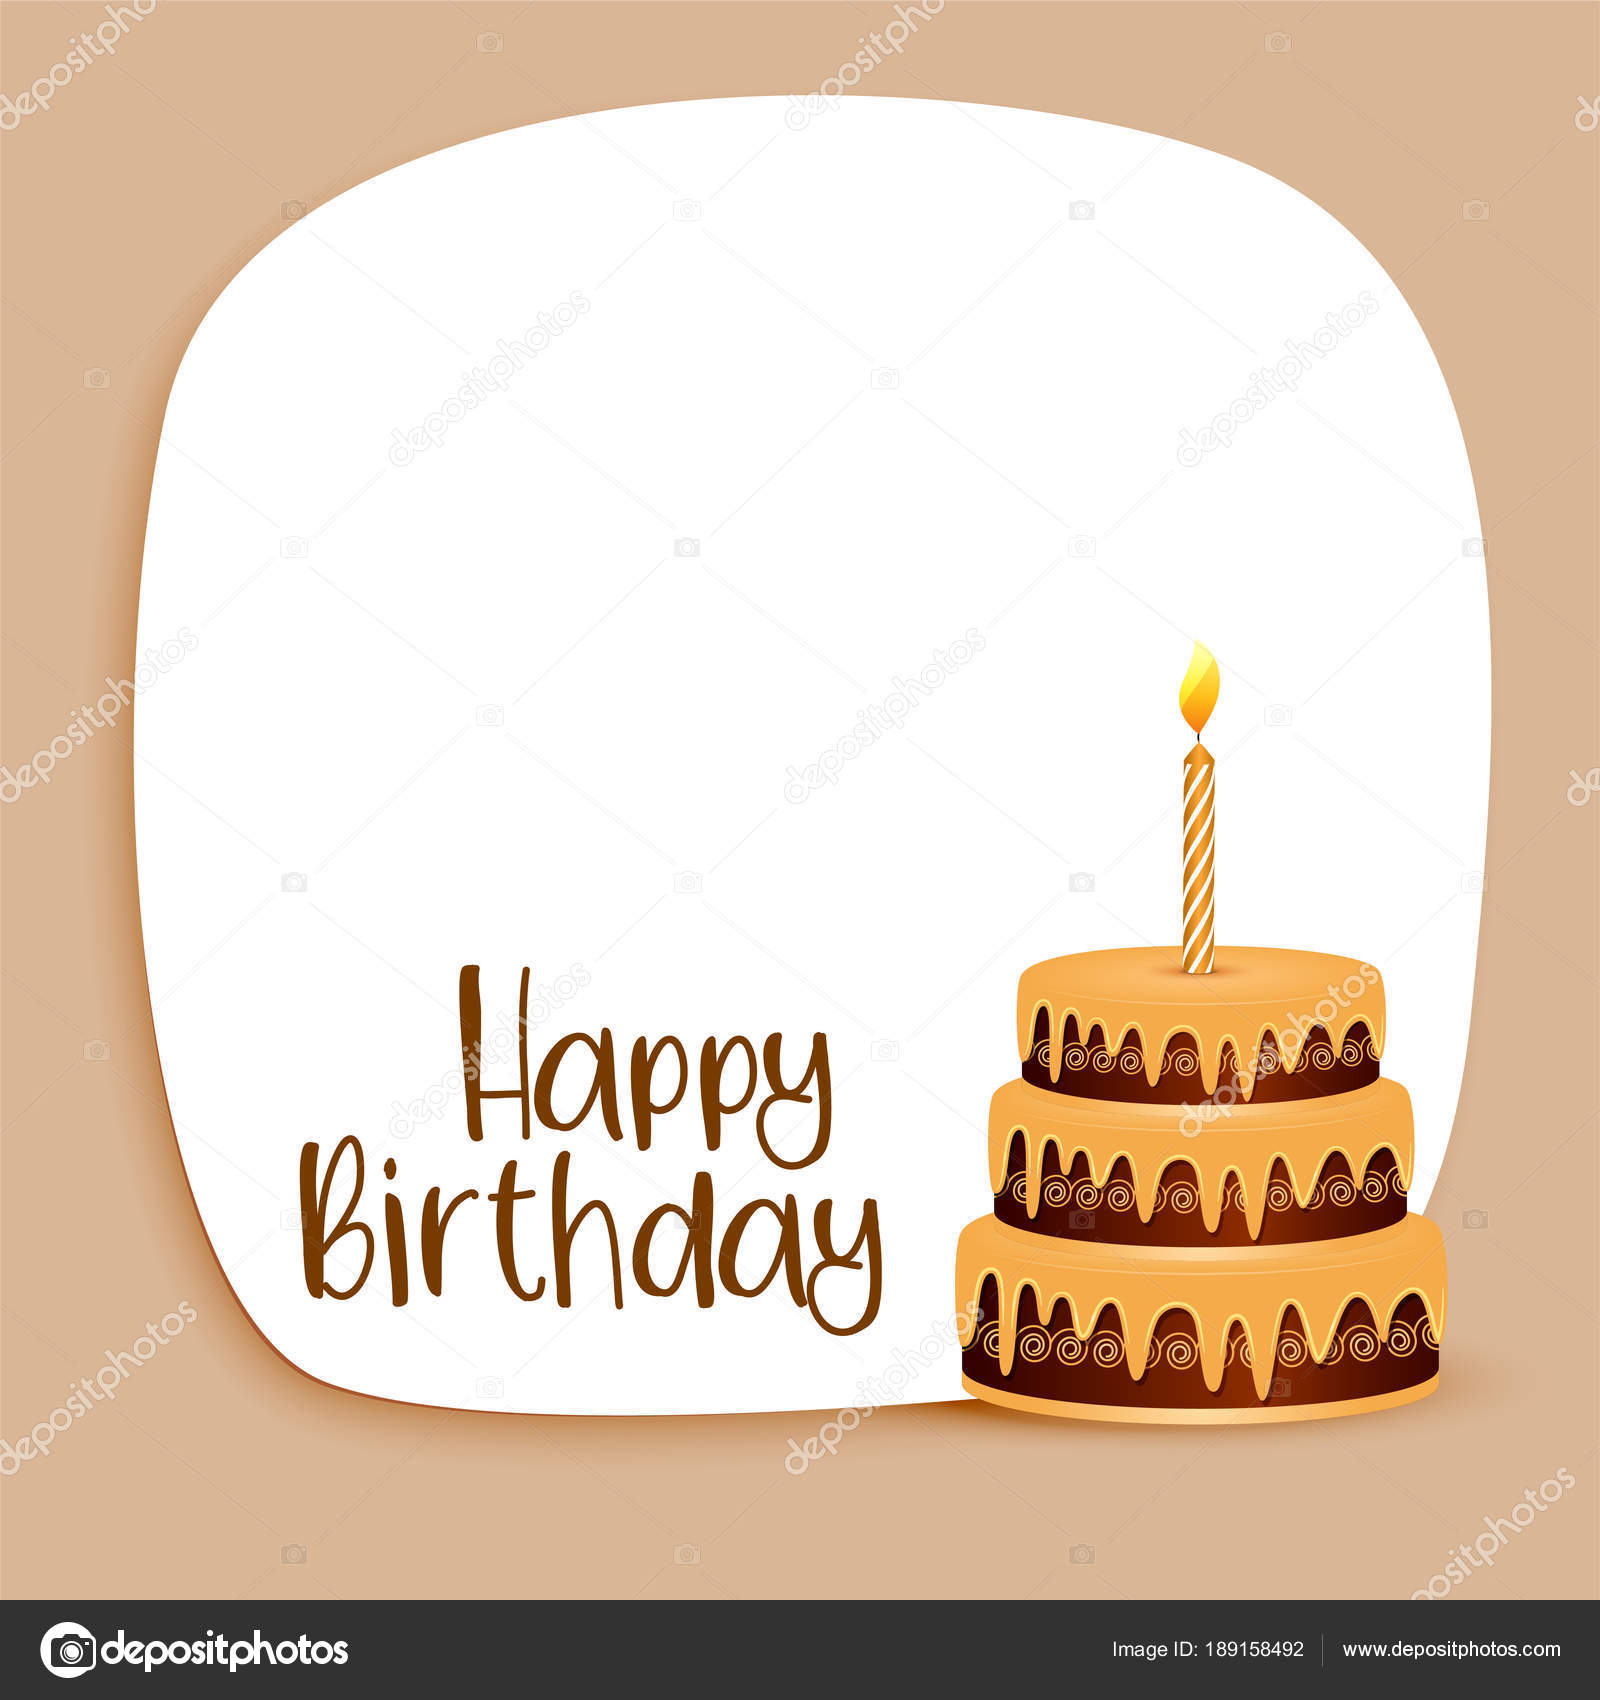 Happy Birthday Card Design With Text Space And Cake Stock Vector